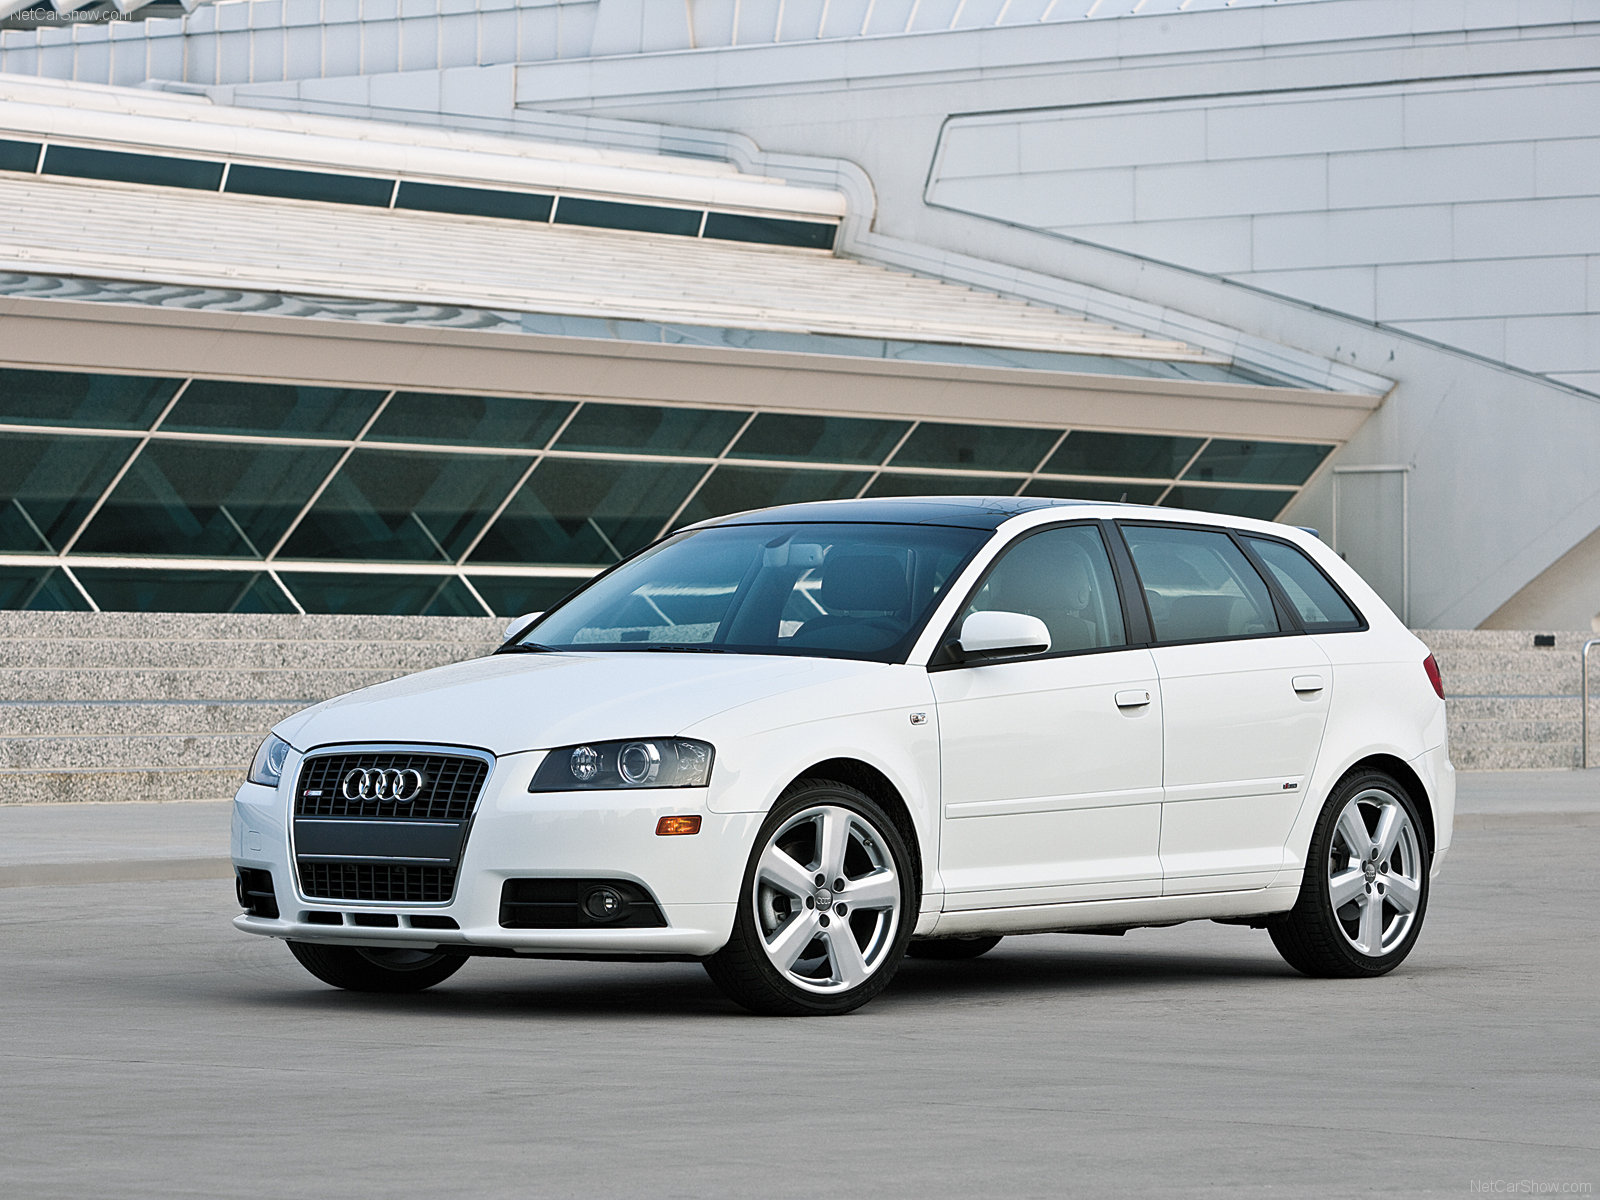 audi a3 sportback 1 9 tdi technical details history. Black Bedroom Furniture Sets. Home Design Ideas